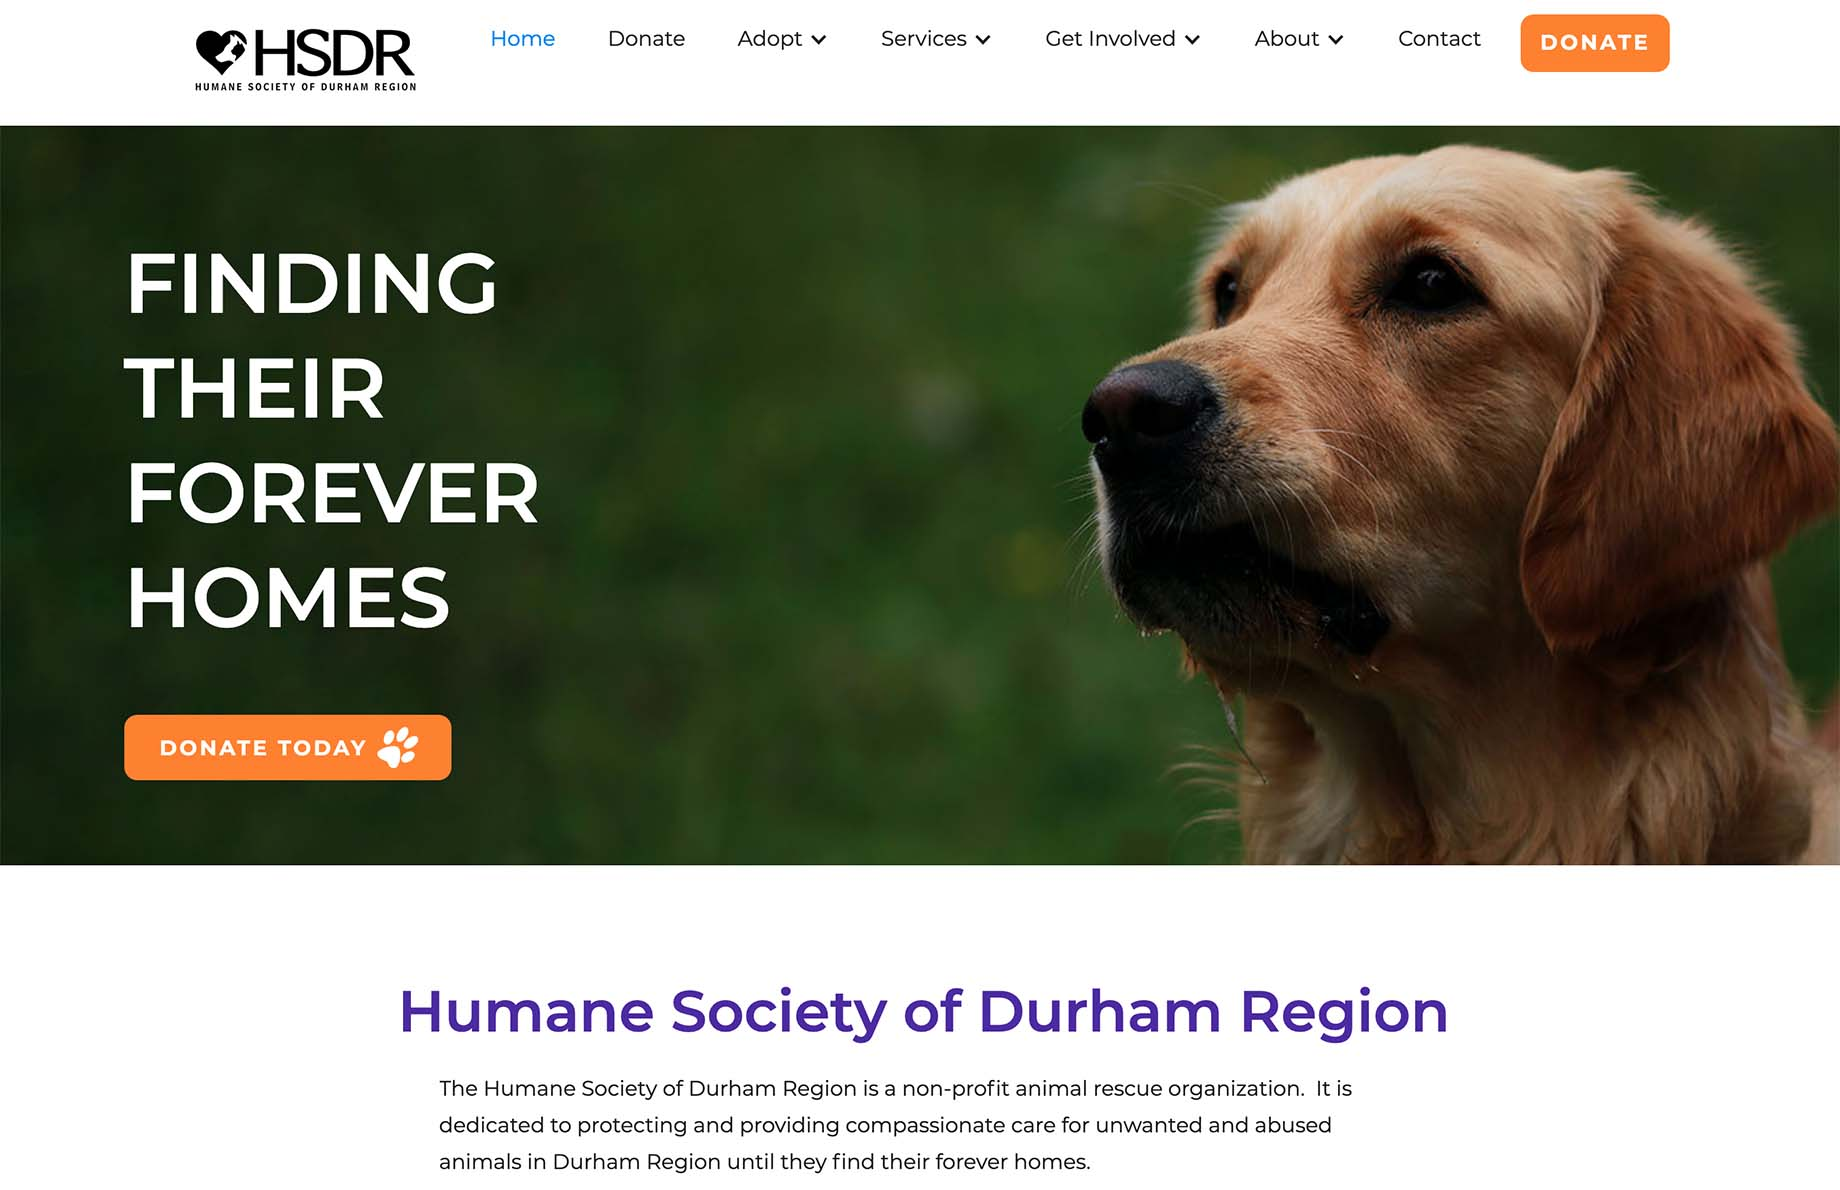 Picture of HSDR website.